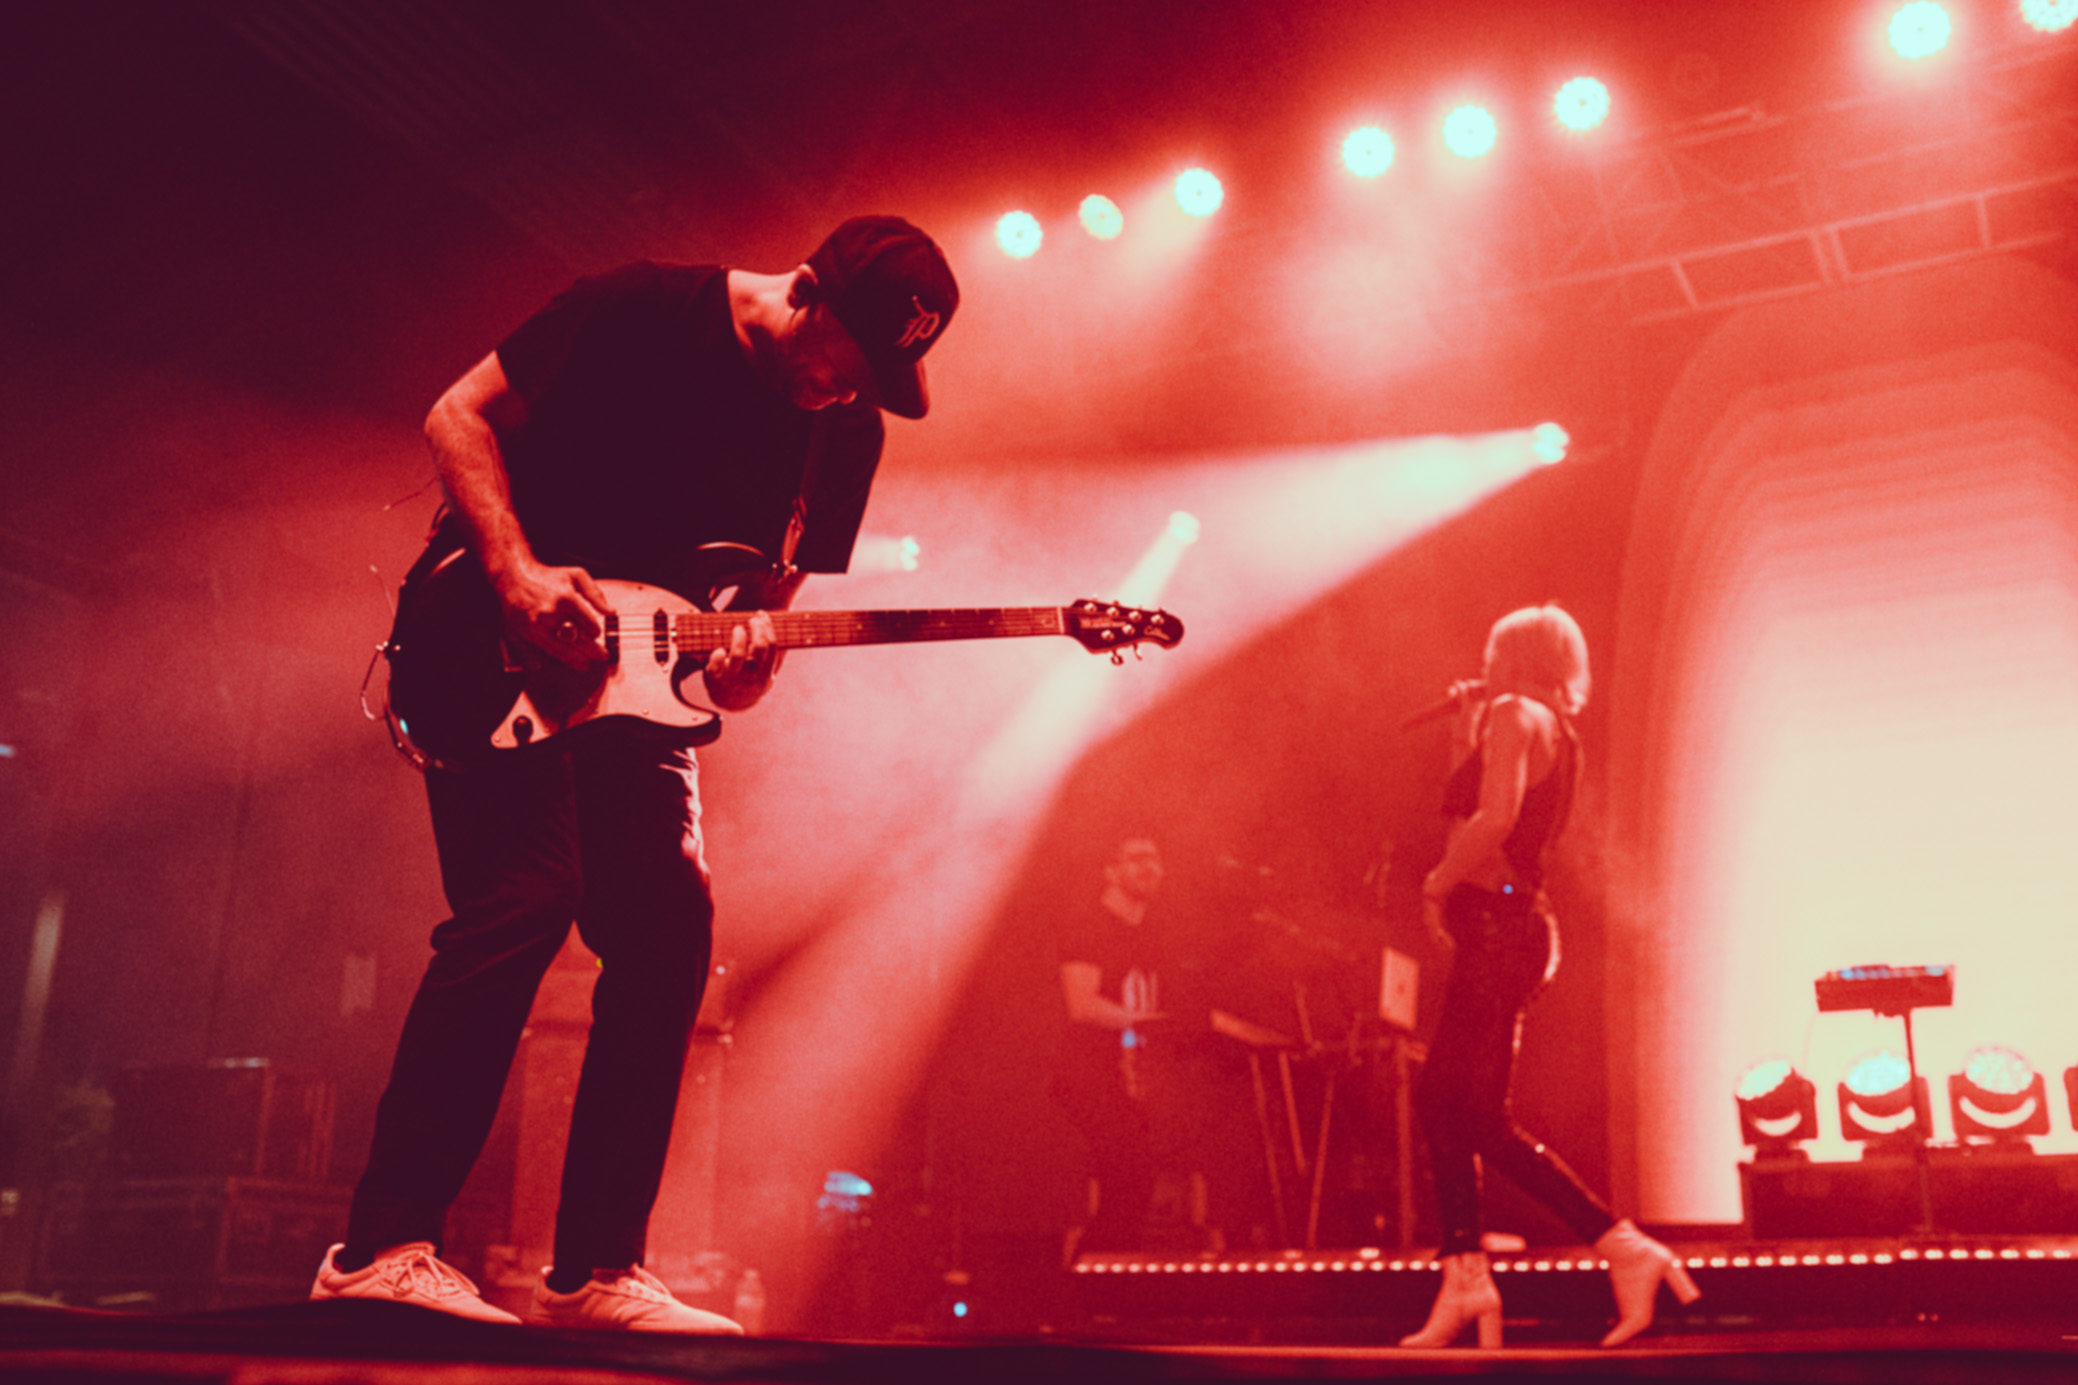 Phantogram performs in concert at Avondale Brewing in Birmingham, Alabama on September 10th, 2019. (Photo by David A. Smith / DSmithScenes)